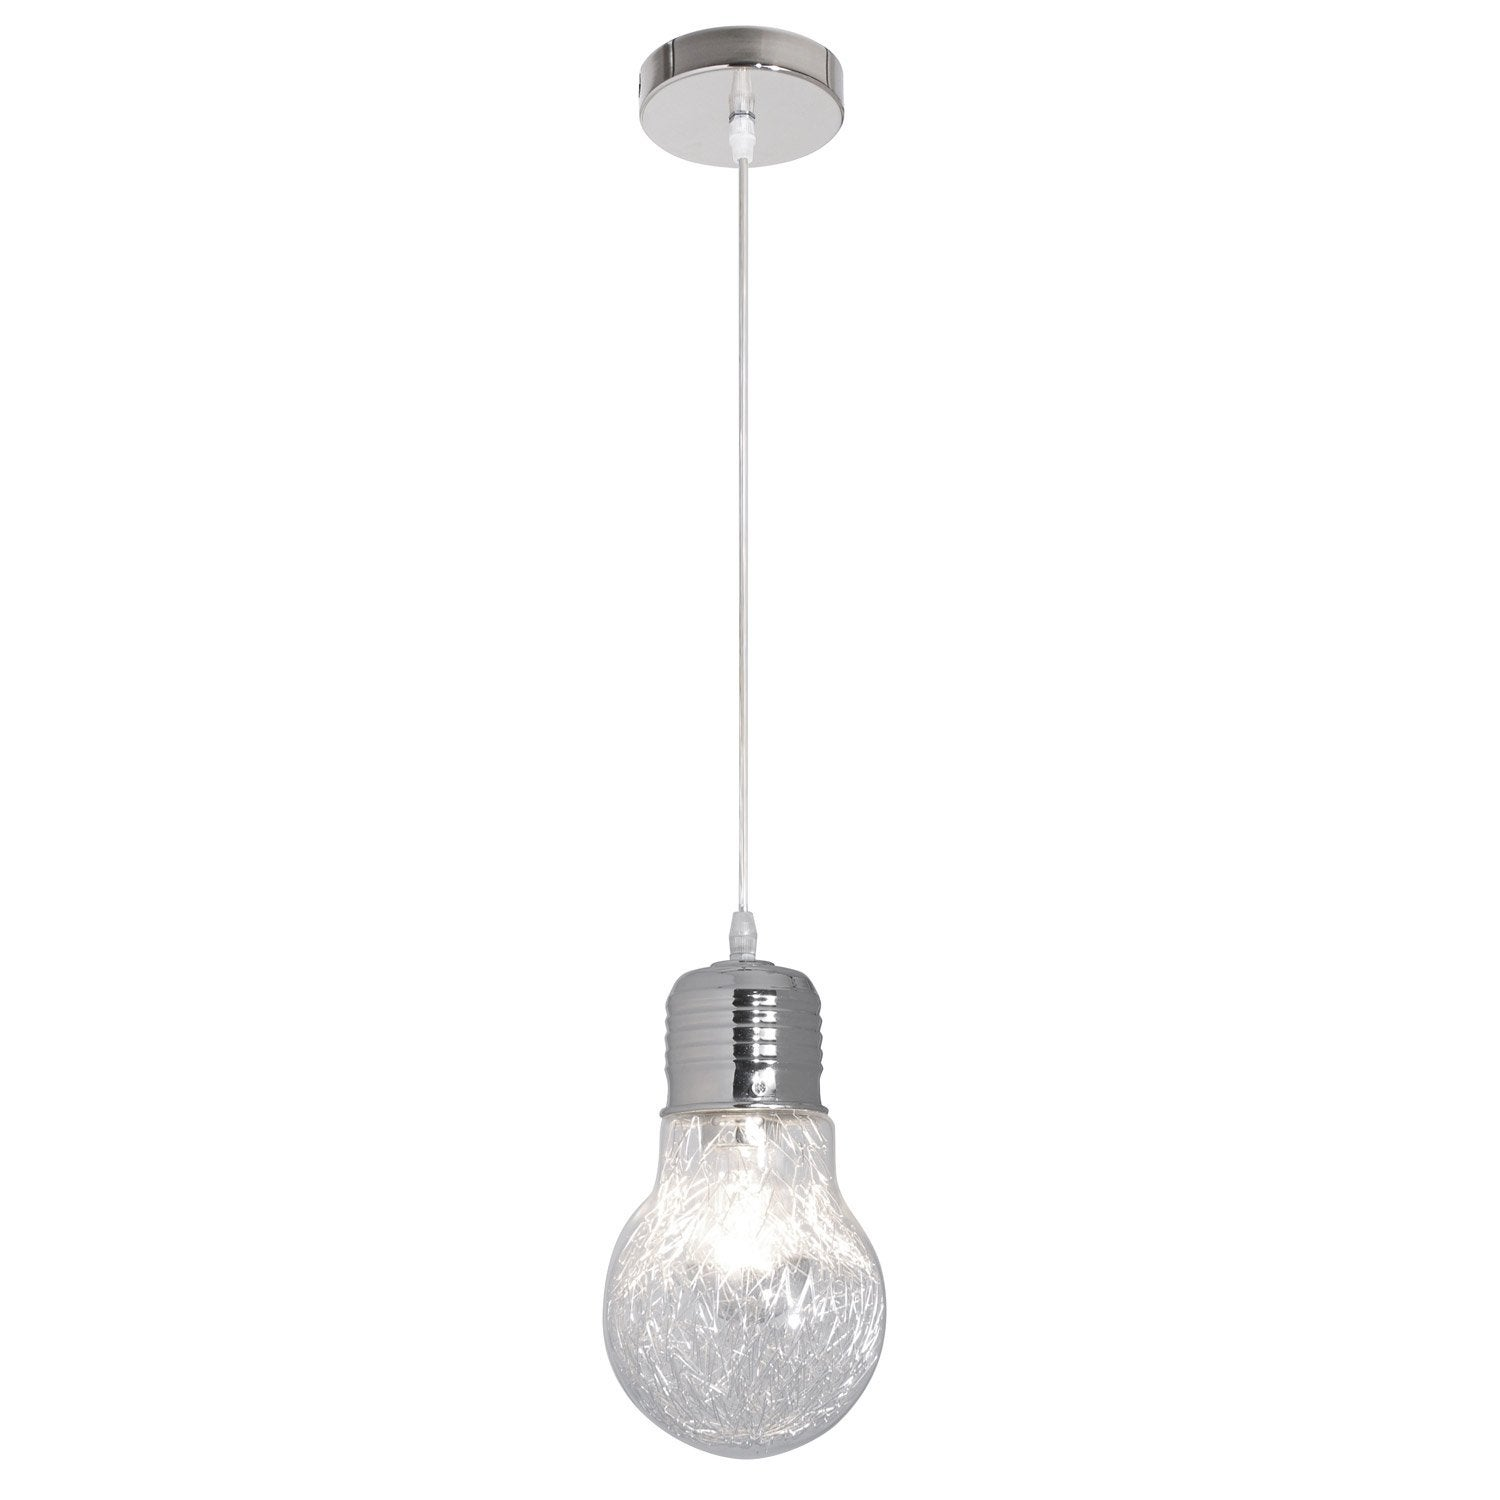 Suspension design ampoule filament verre transparent 1 x for Ampoule suspension luminaire